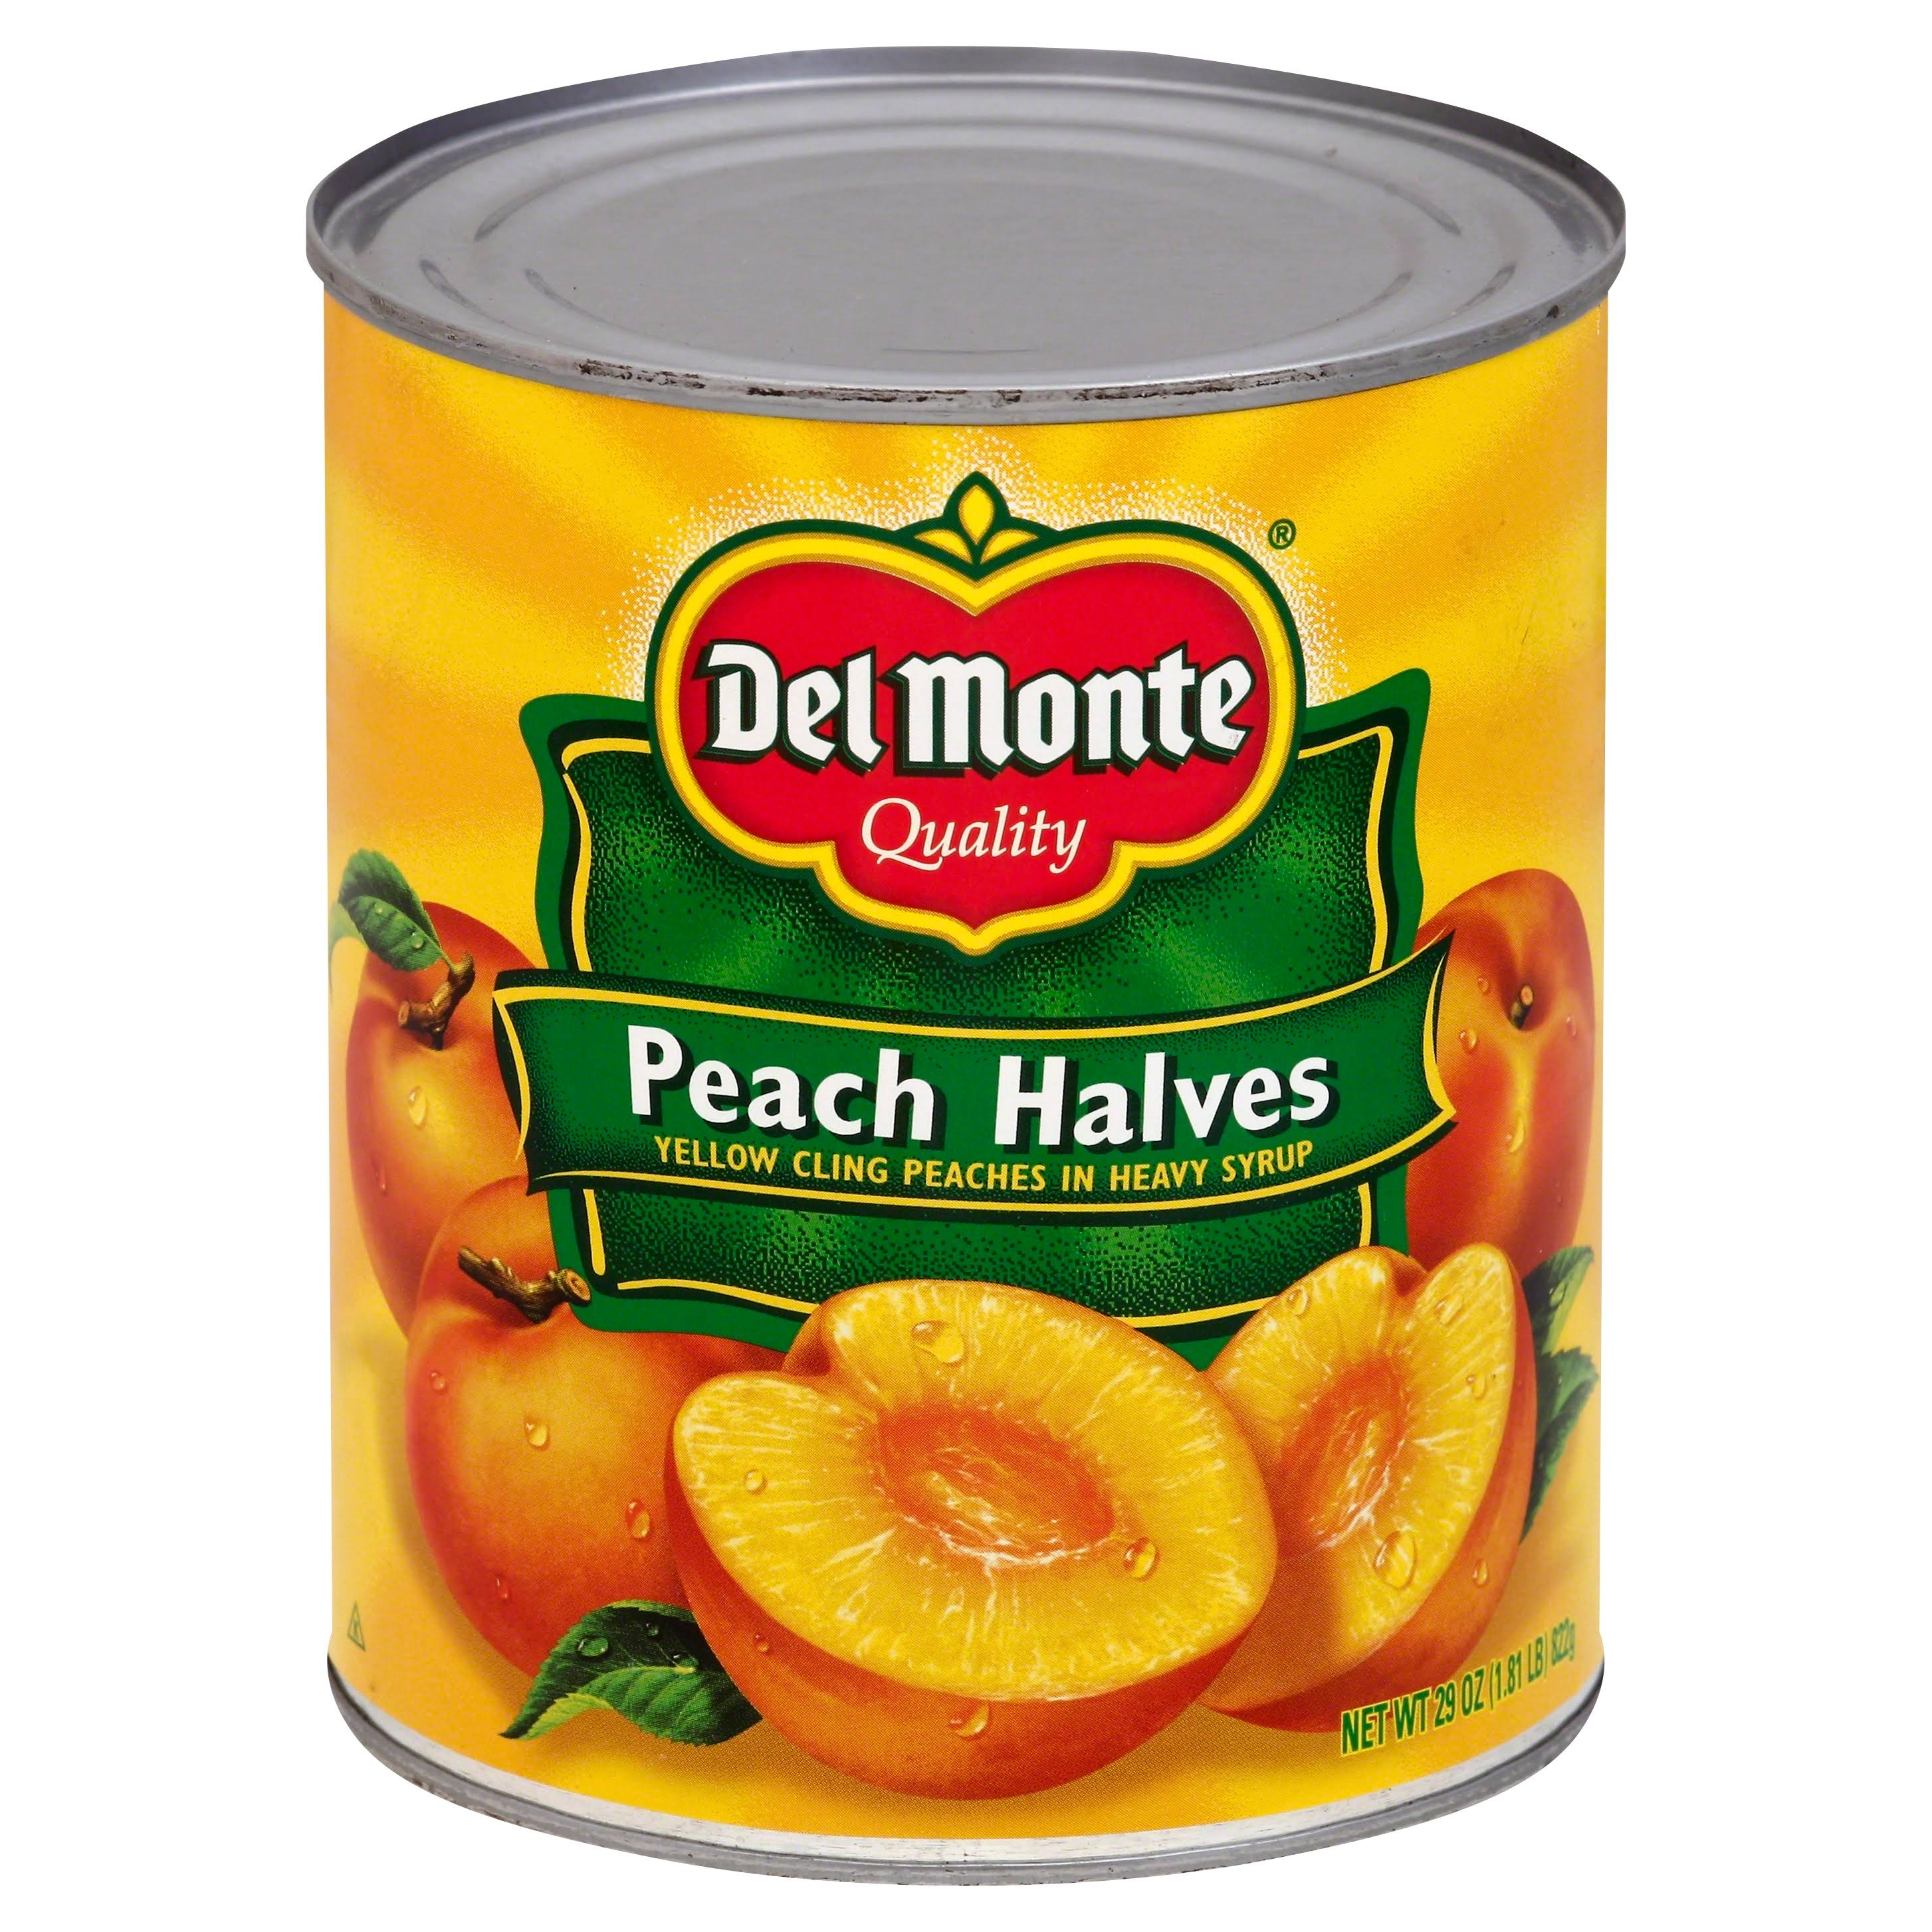 Del Monte Peach Halves Yellow Cling Peaches in Heavy Syrup